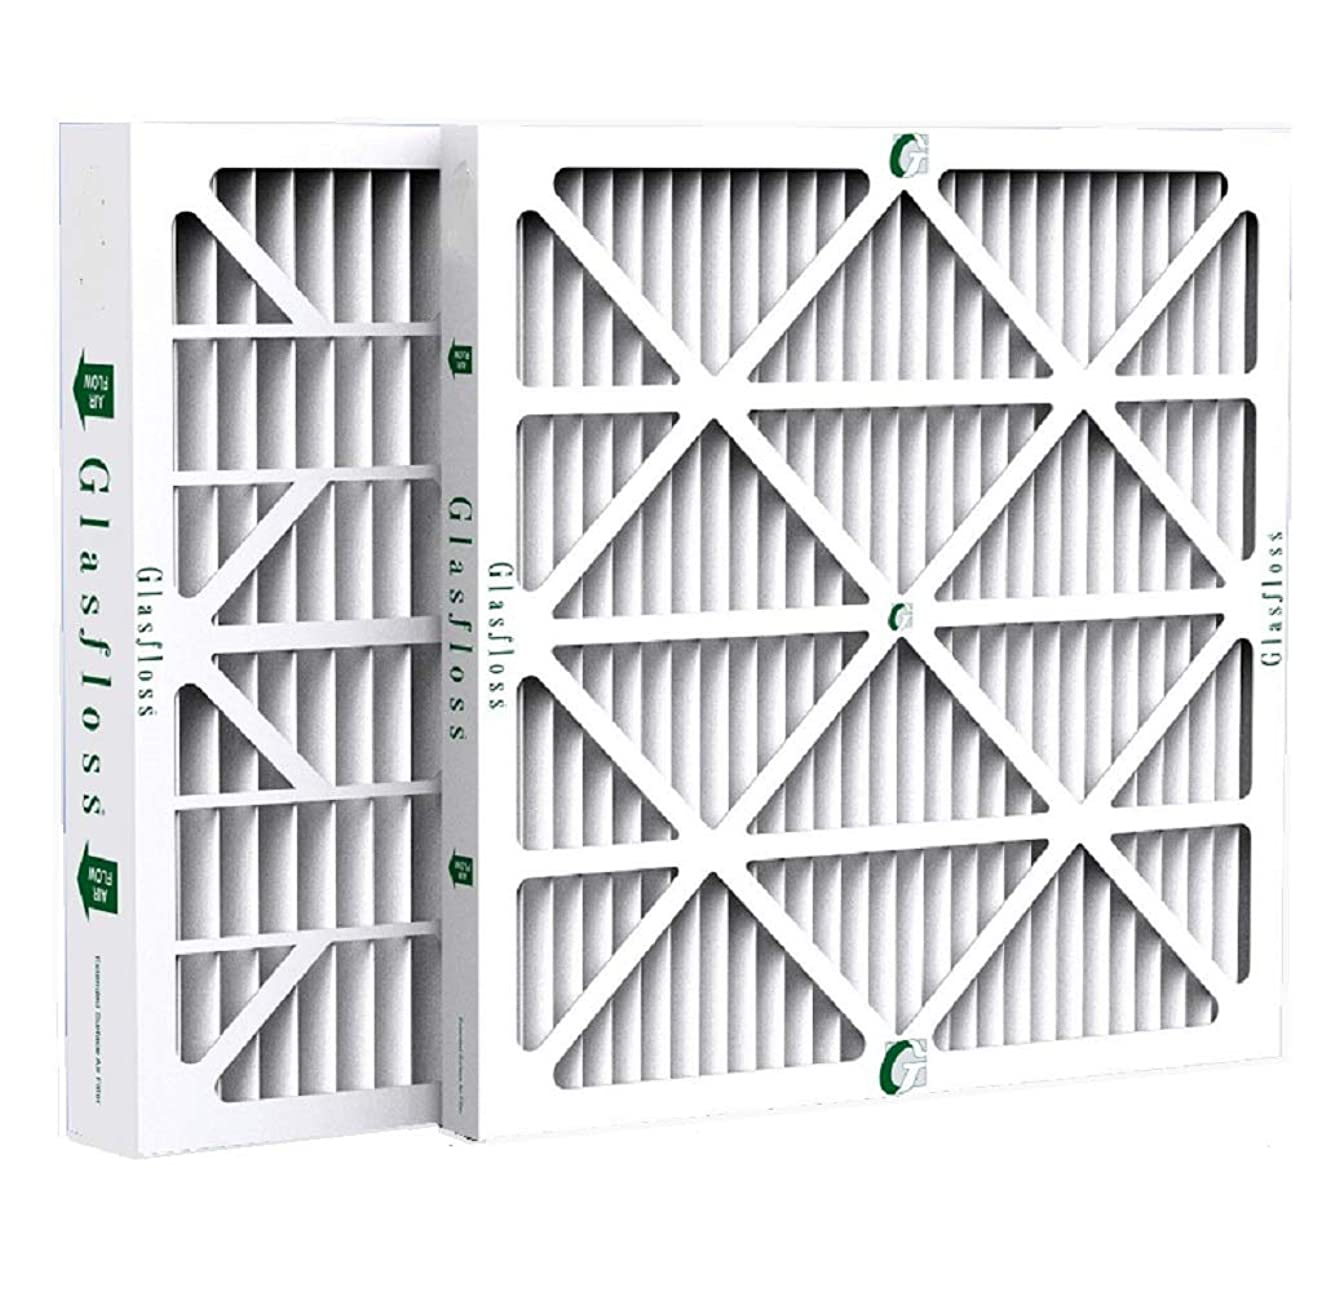 Glasfloss ZL16x20x4 MERV 10 AC & Furnace Filters. 6 Pack. Actual Size: 15-1/2 x 19-1/2 x 3-3/4